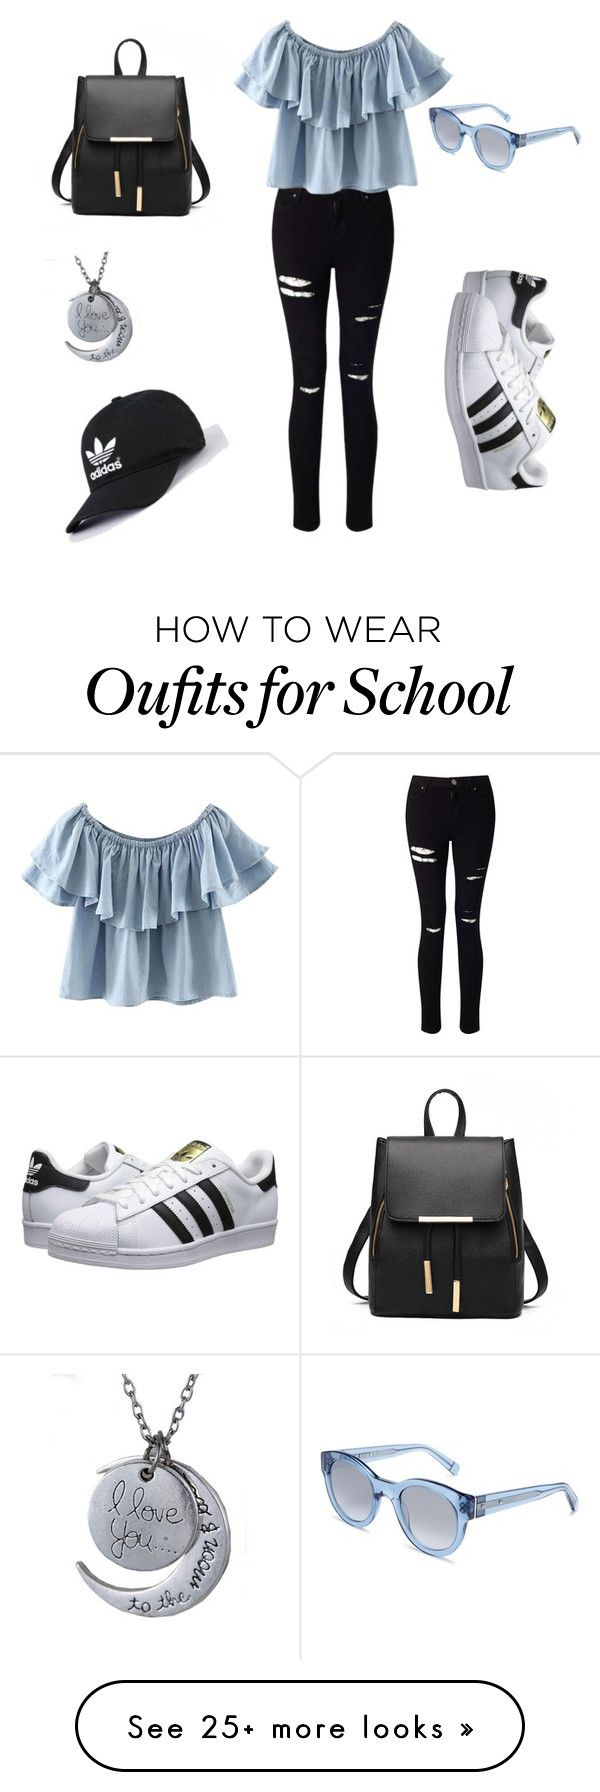 Adidas Women Shoes - School Outfit ❤️ by maonenaisse on Polyvore featuring Miss Selfridge, Chicnova Fashion, adidas Originals and Bobbi Brown Cosmetics - We reveal the news in sneakers for spring summer 2017